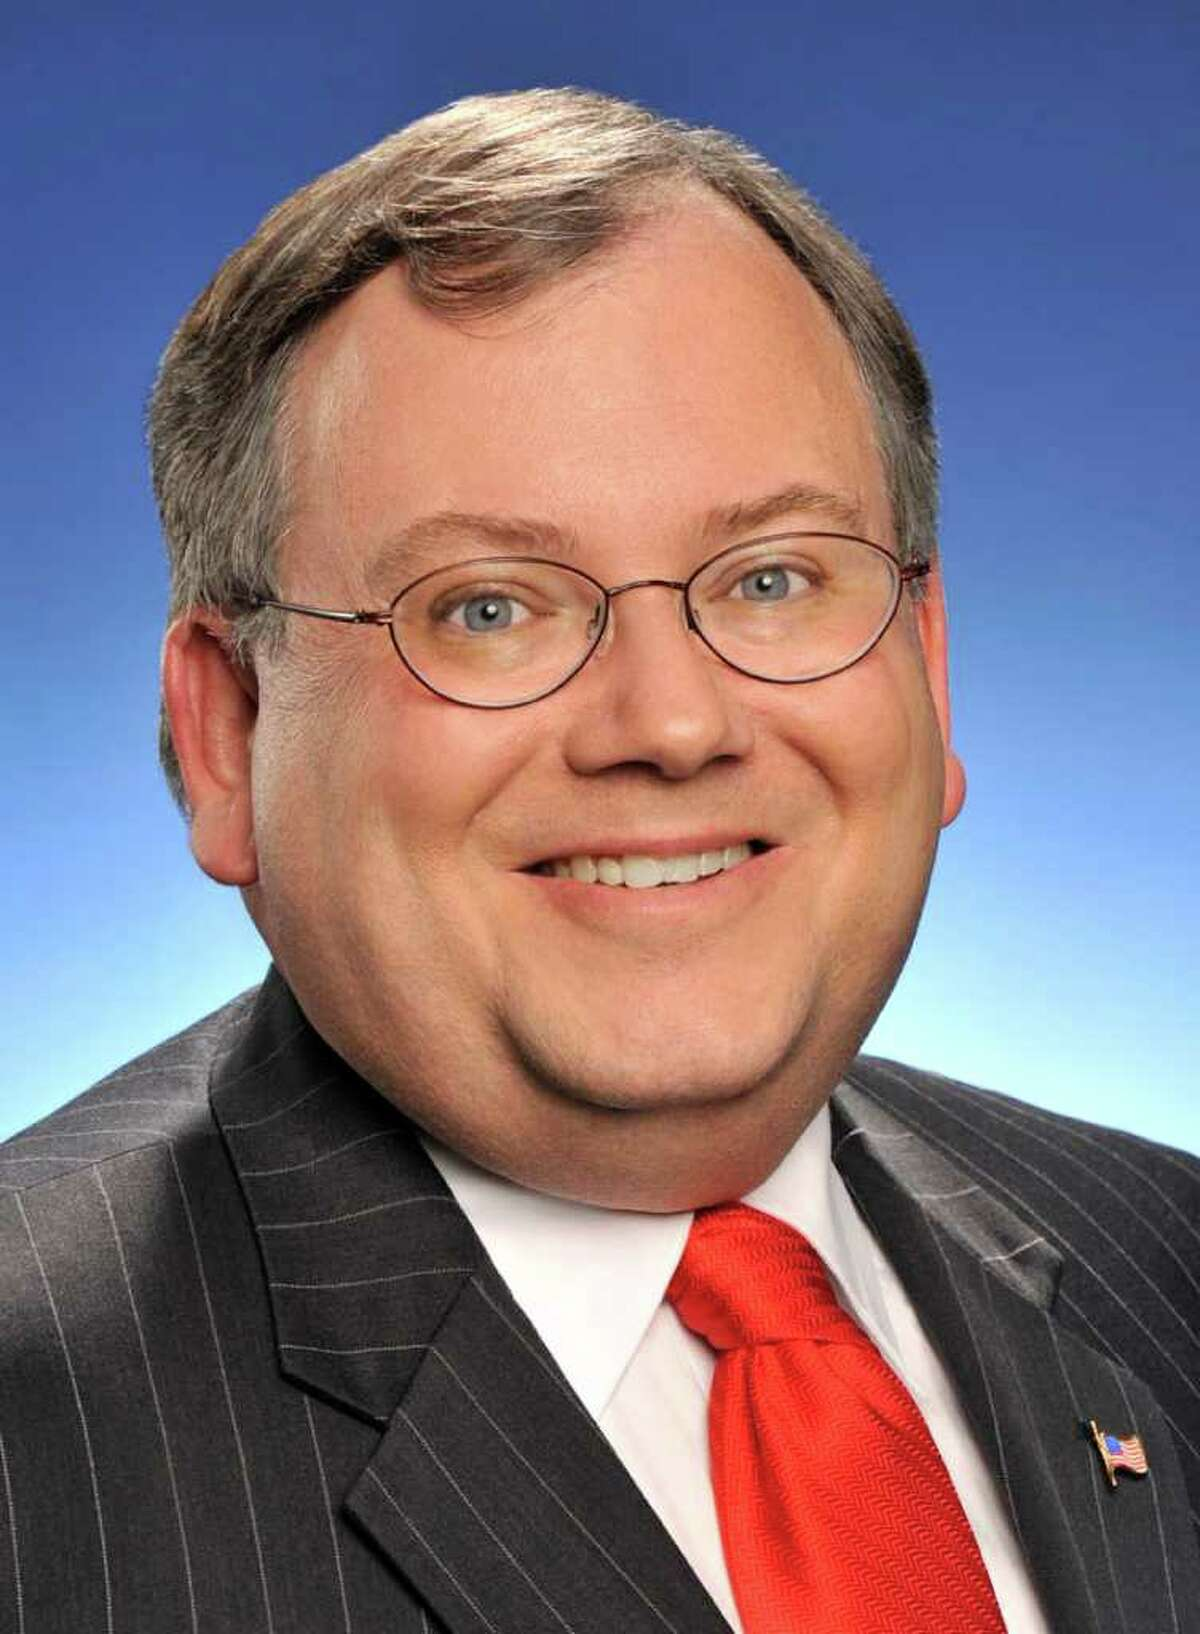 Jerry Farrell, Jr. Democratic Candidate for Secretary of the State in Connecticut